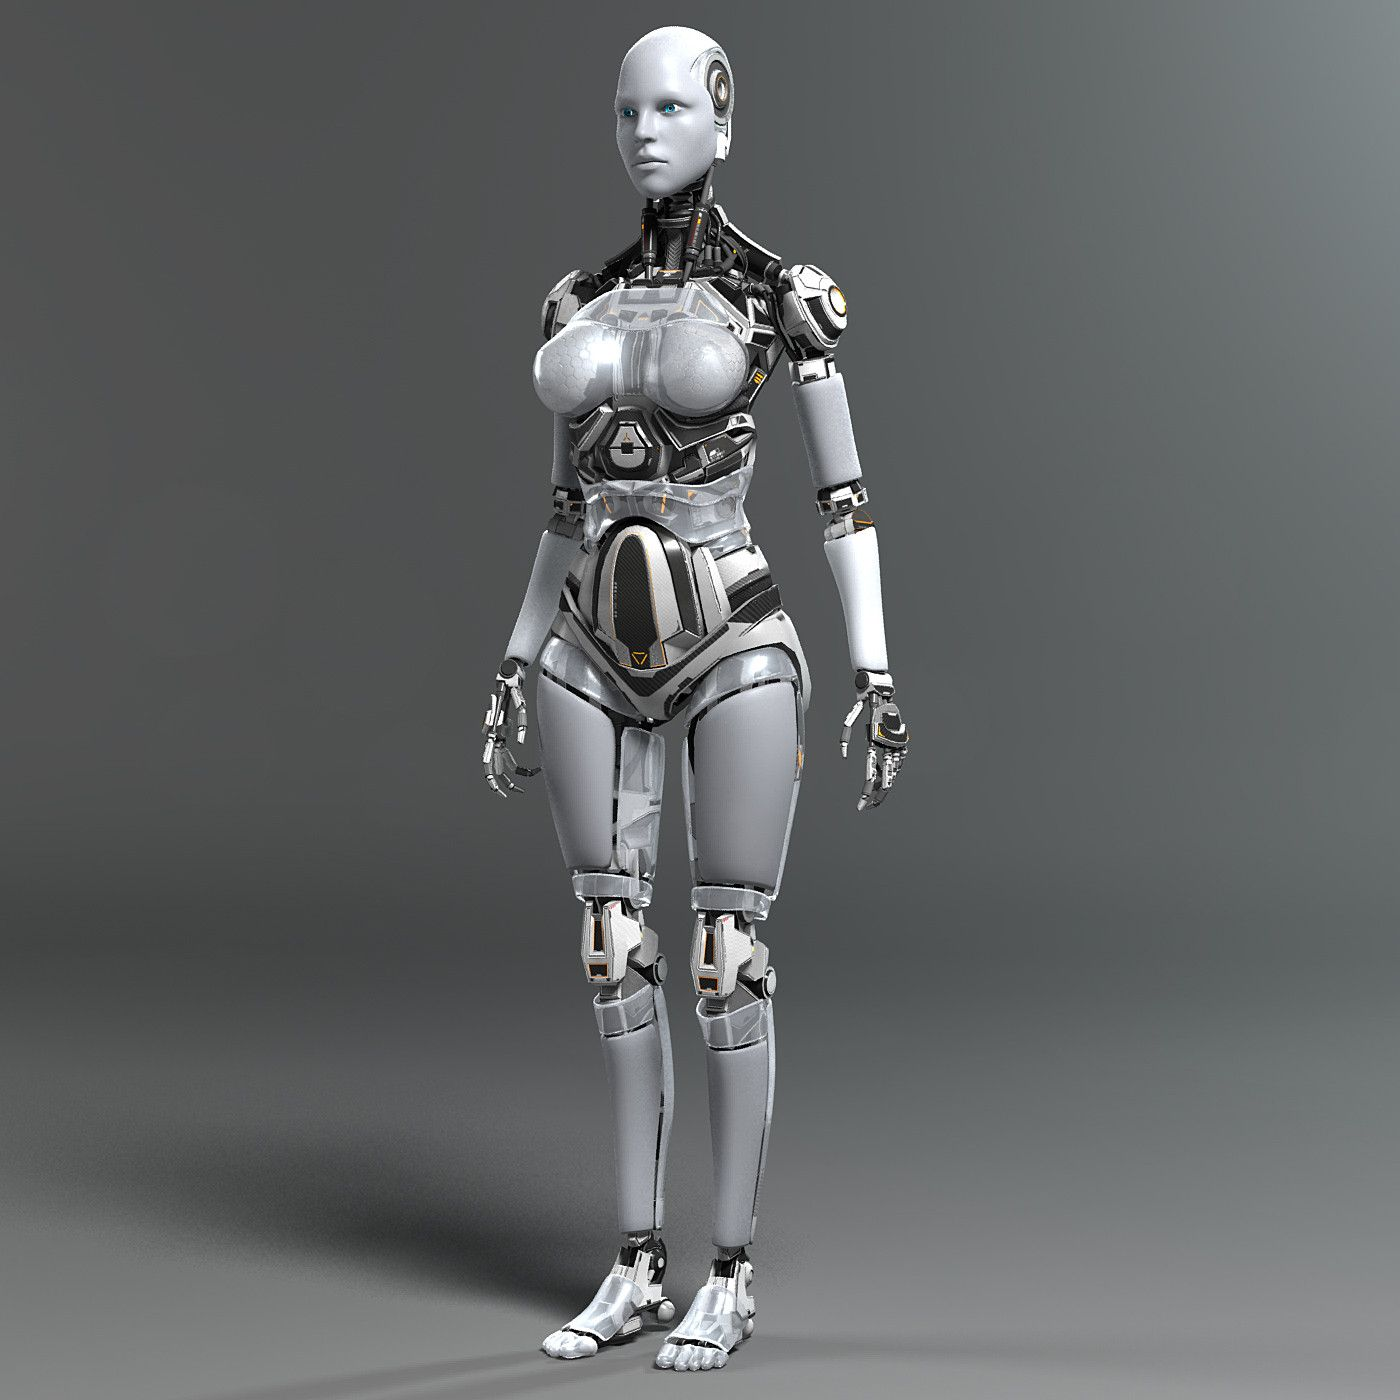 Art Modeling Studio Young Girls Models: This High Resolution Photo-realistic Female Robot Is